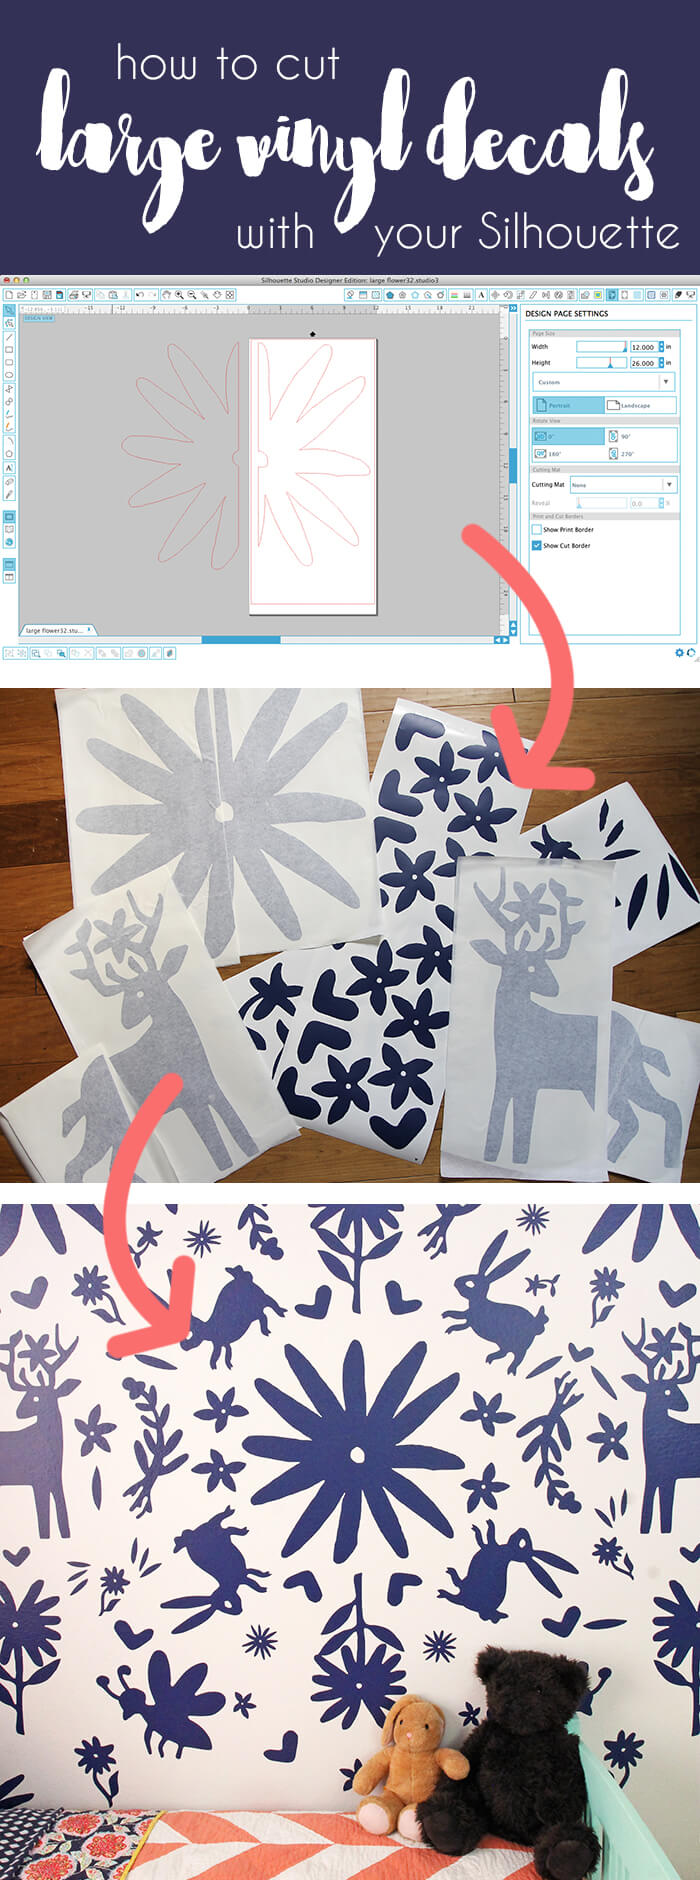 how to cut extra large vinyl decals with your Silhouette - cut settings plus how to piece them together on your wall